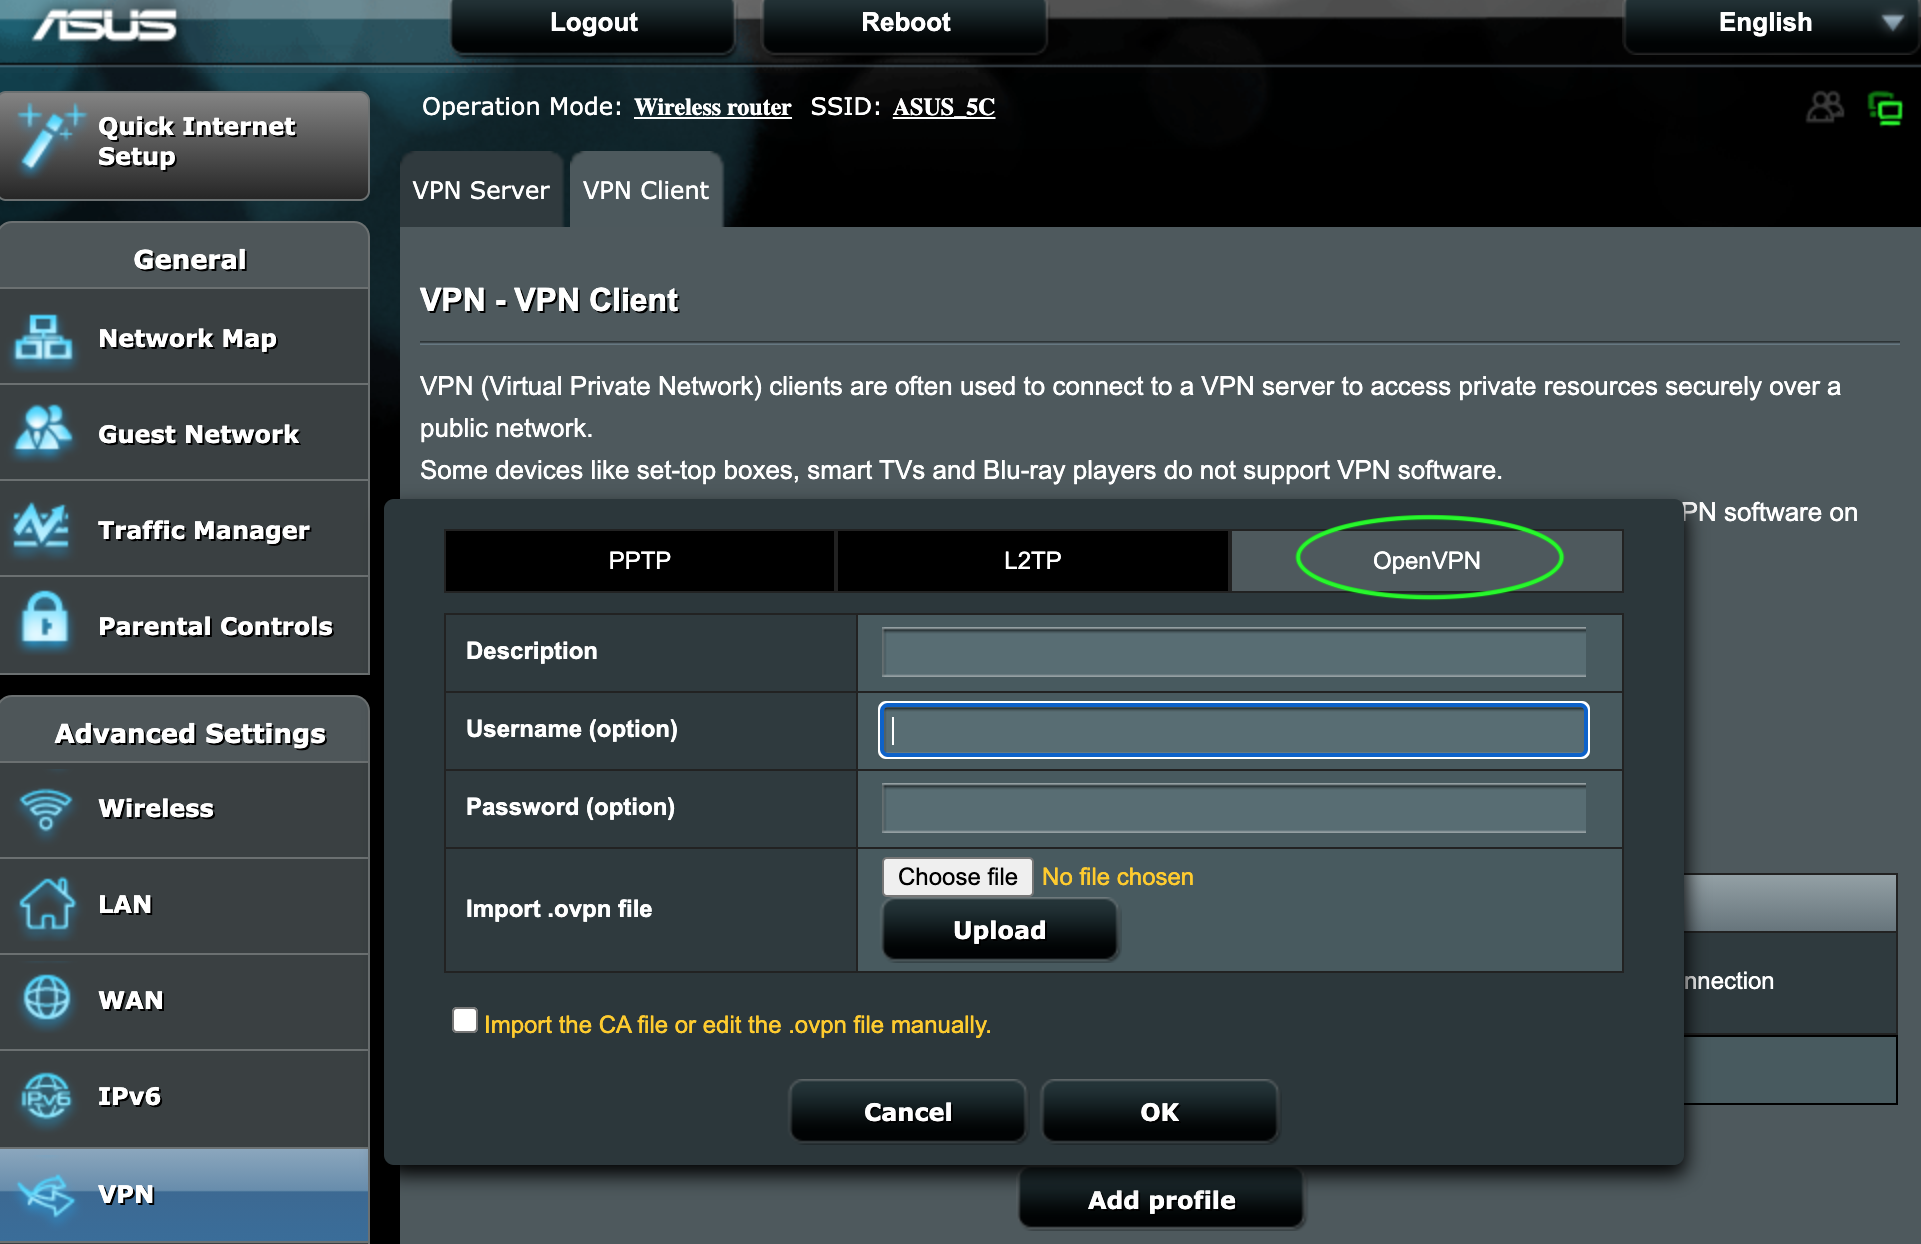 VPN popup window with fields to fill in the username, password, description and to import the OpenVPN configuration.